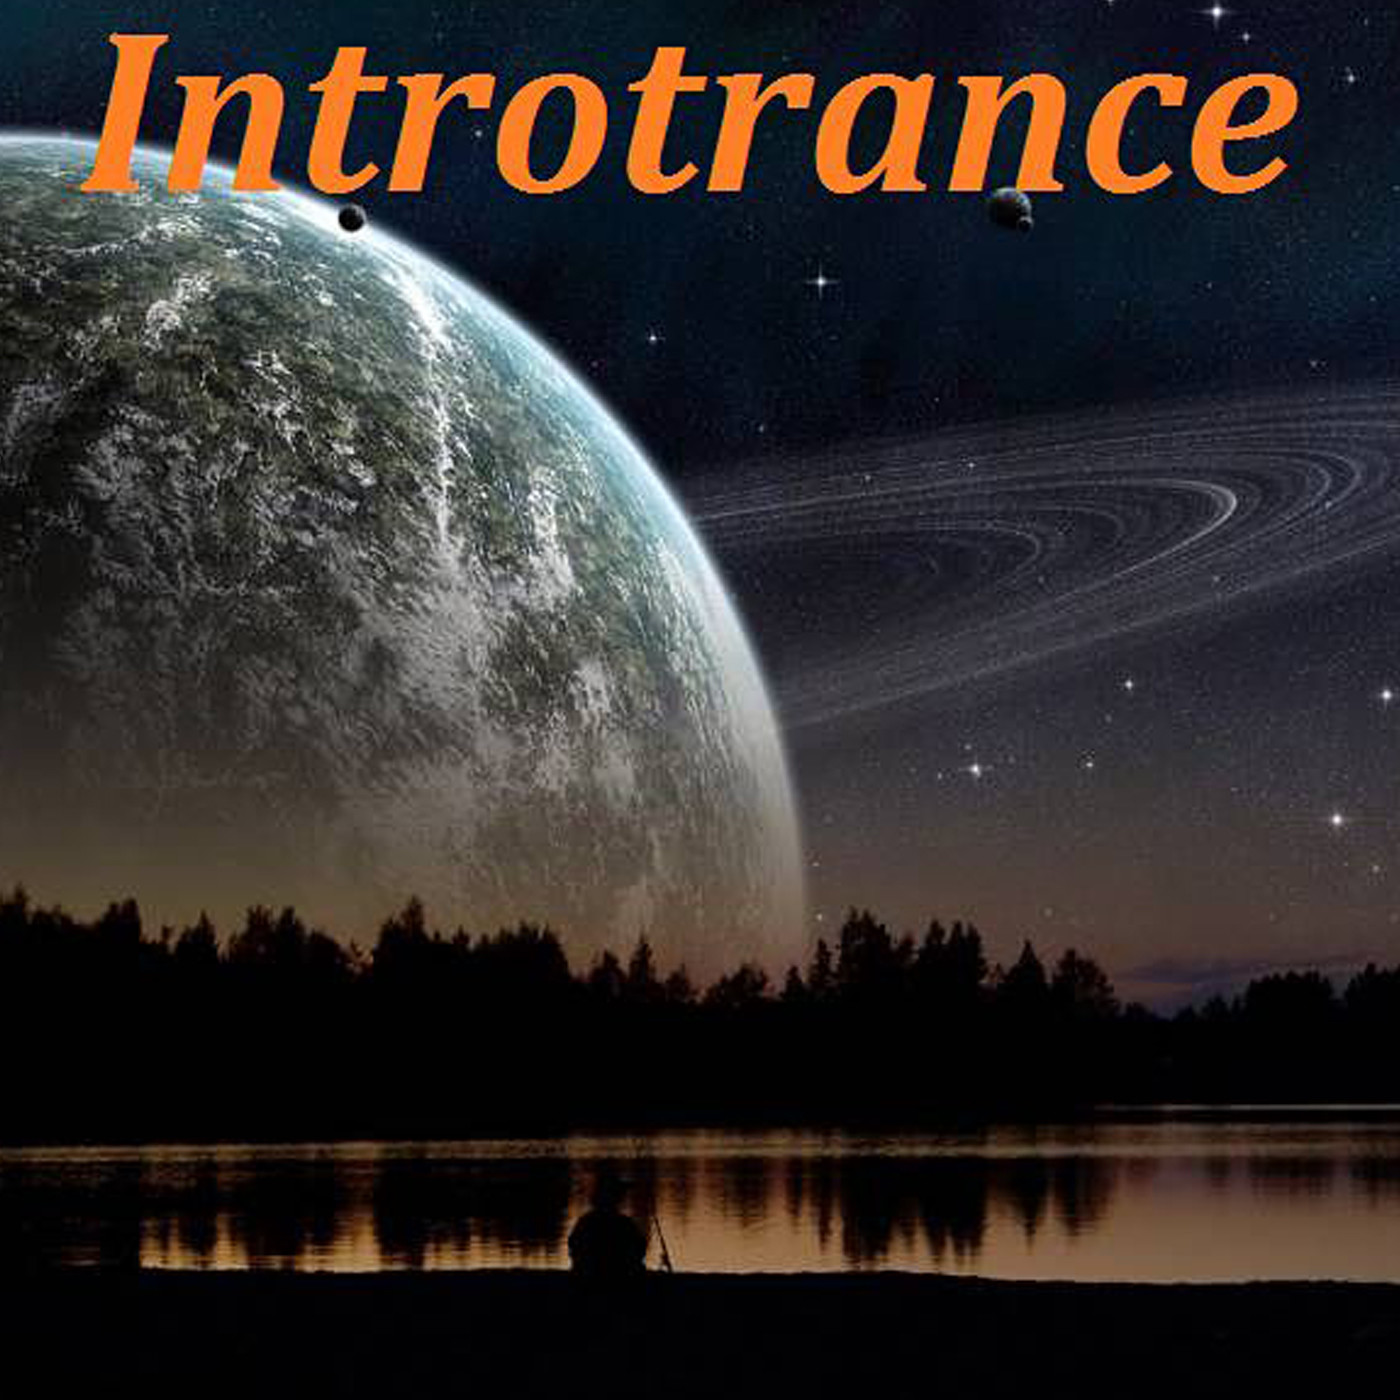 Introtrance